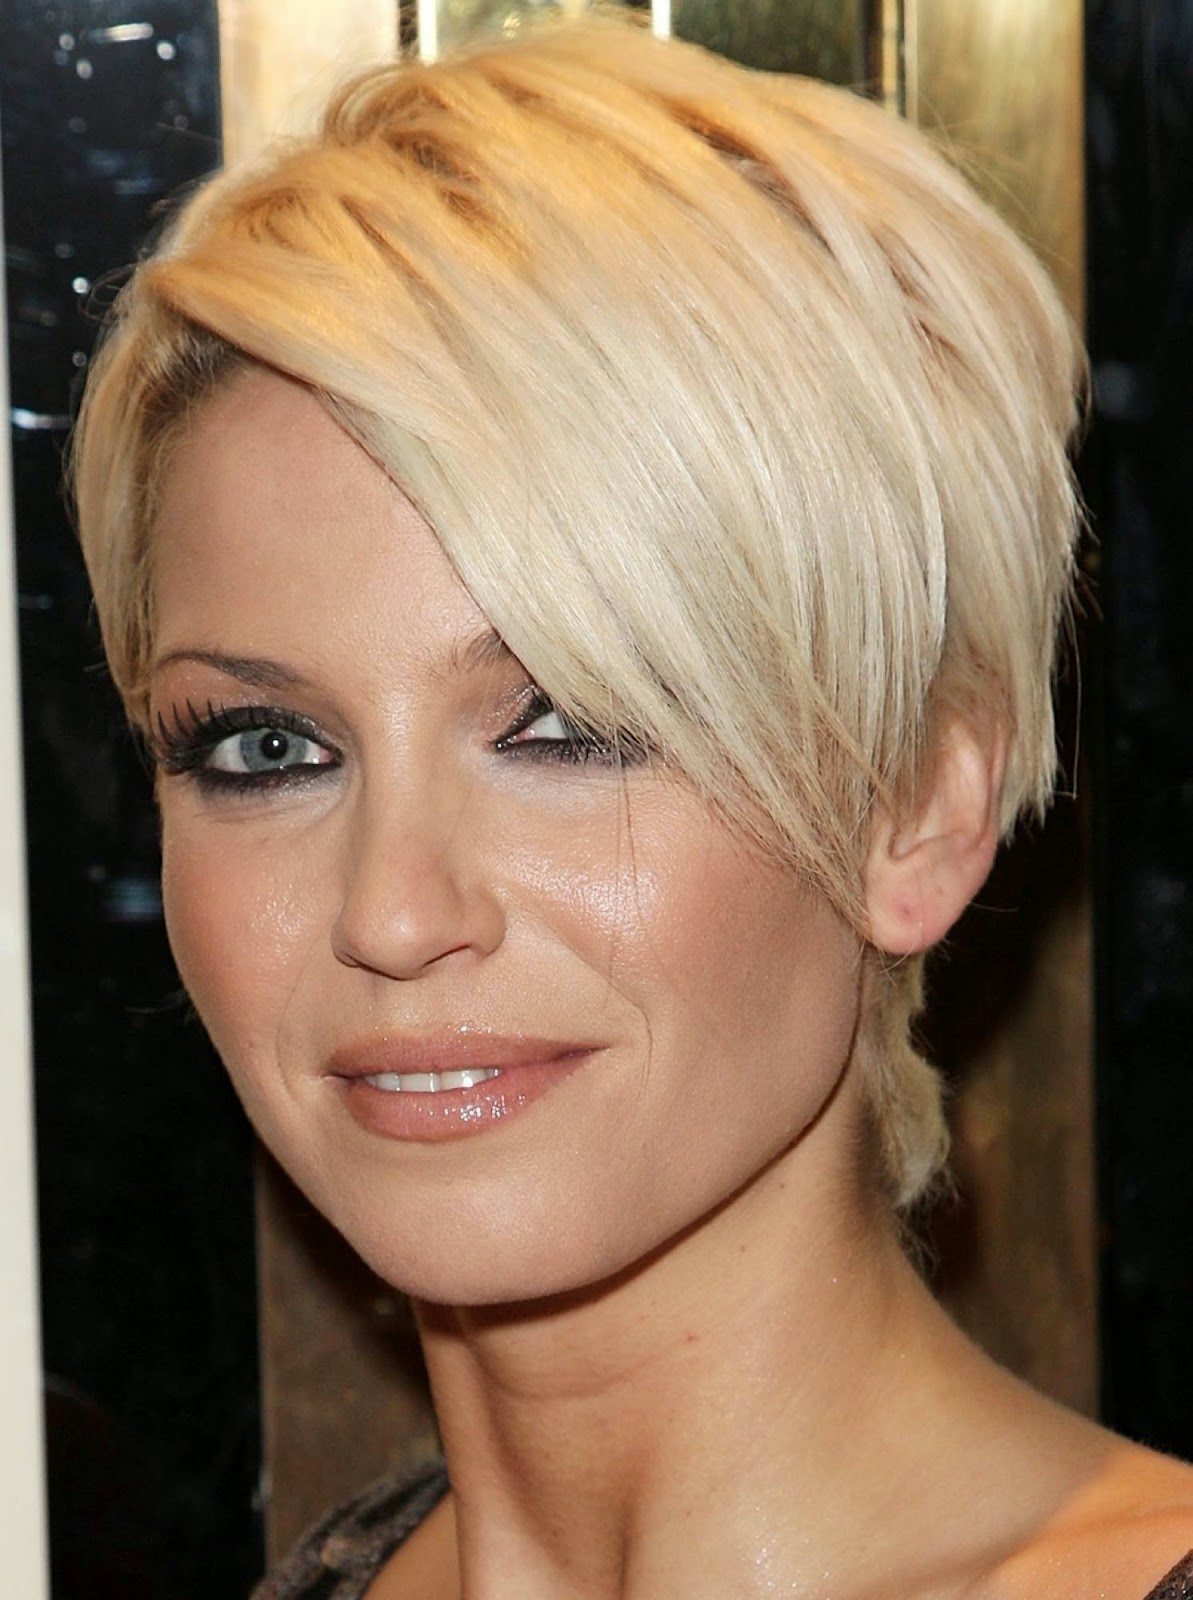 haor styles for hair hairstyles for hair hairstyles pictures 1491